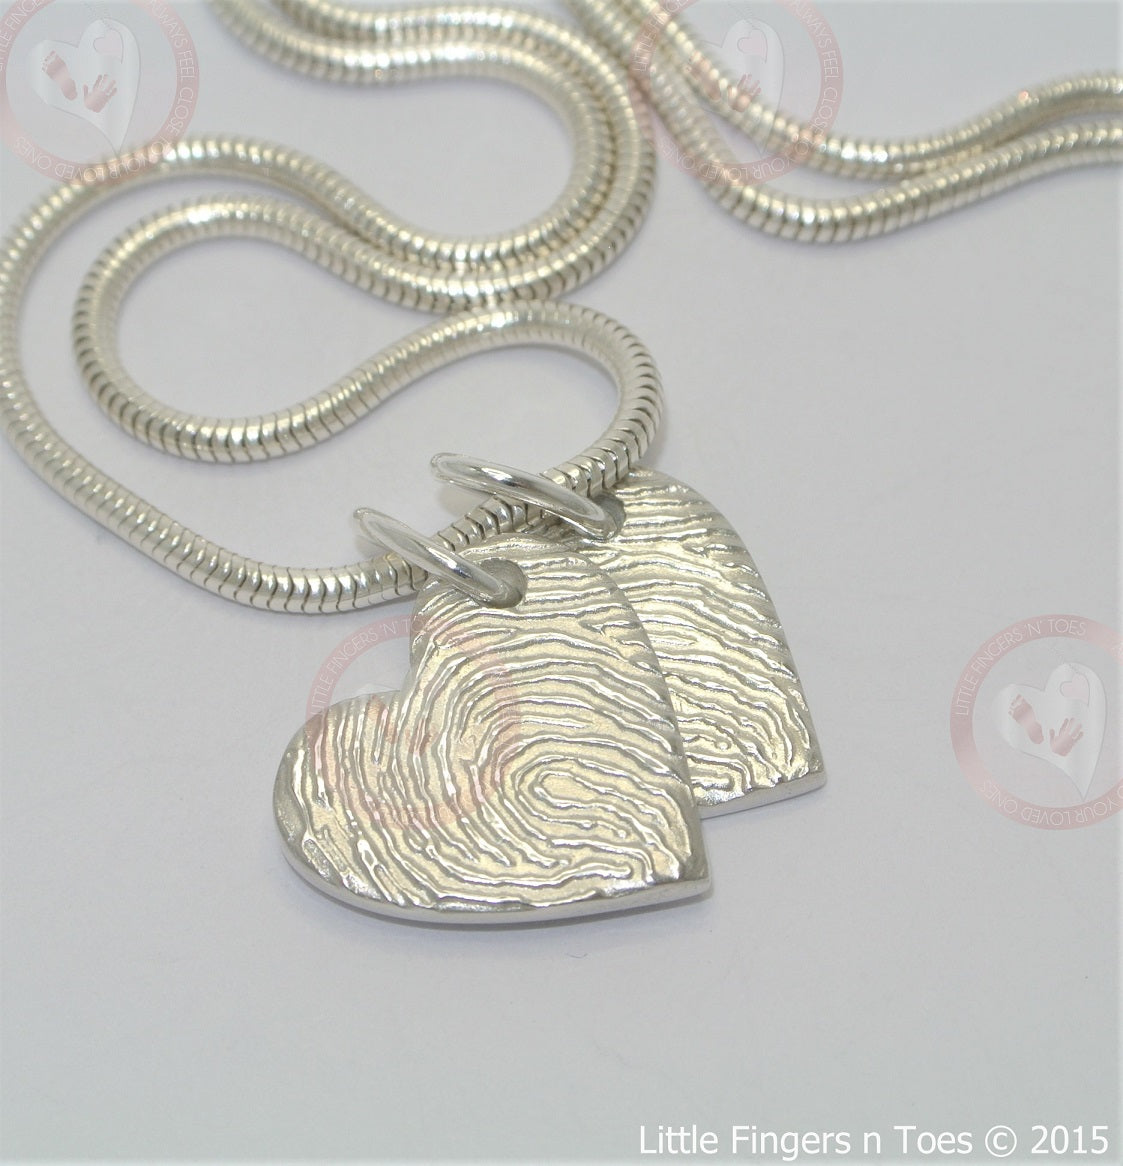 Double-Sided Magnified Fingerprint Pendant. Sterling Silver Fingerprint Jewellery